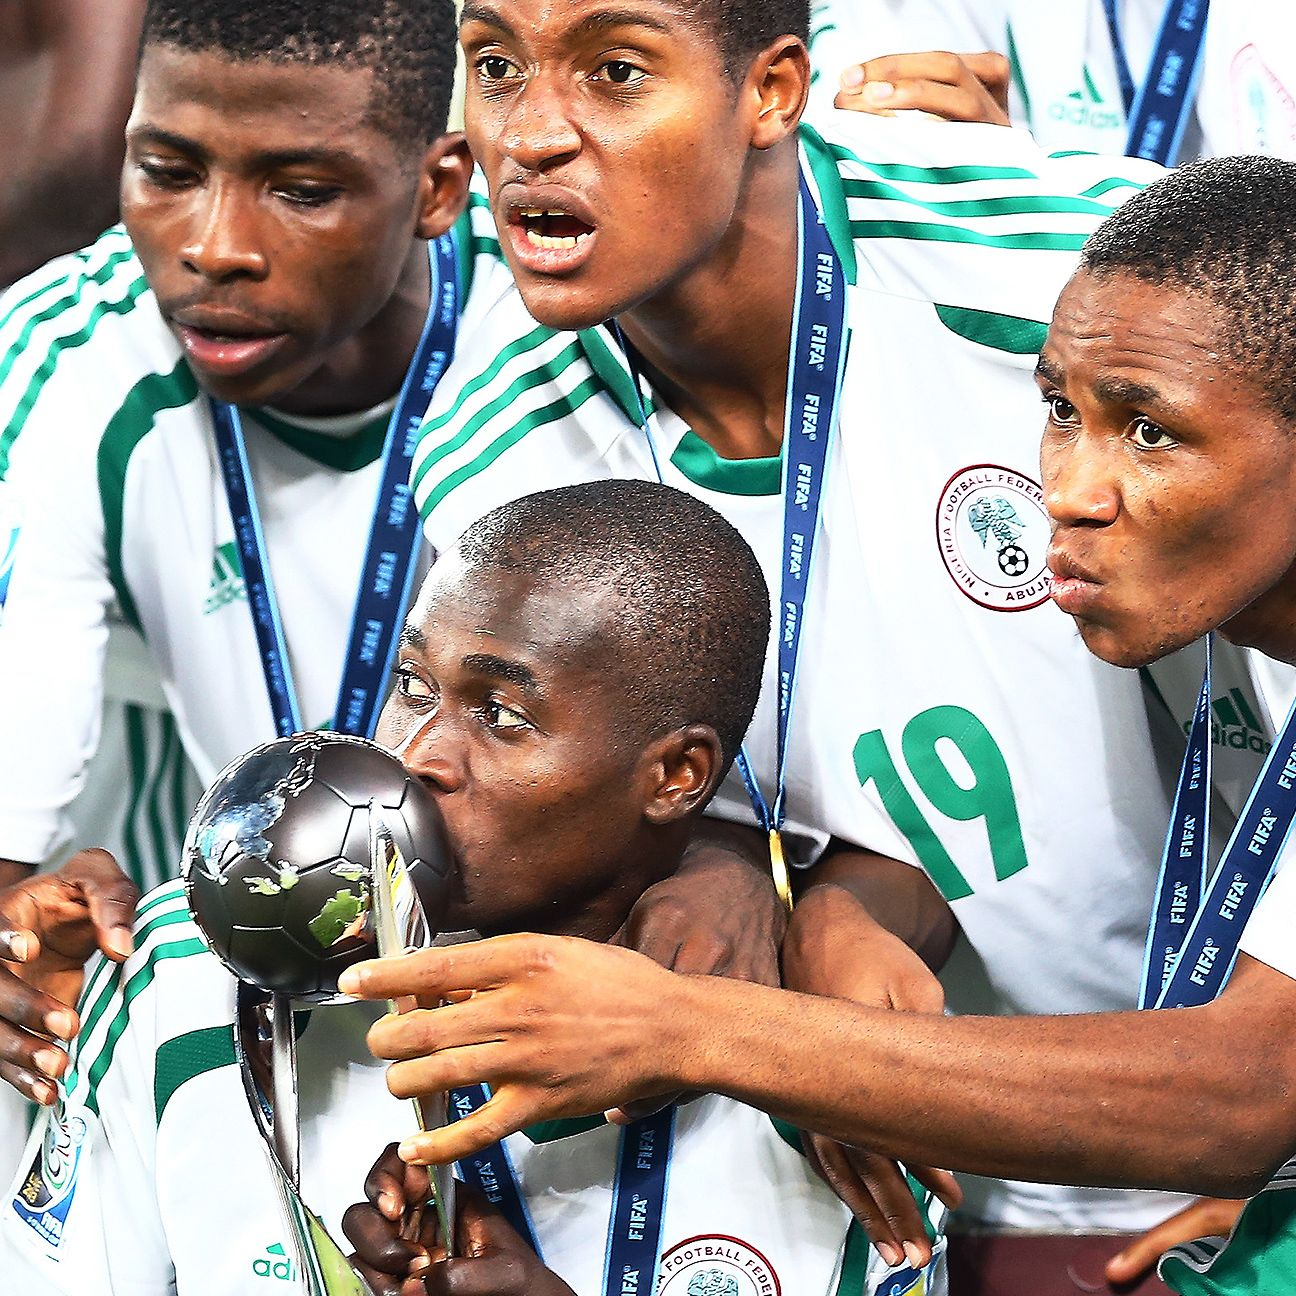 The Nigeria under-17s will be looking to claim yet another Under-17 World Cup in Chile.